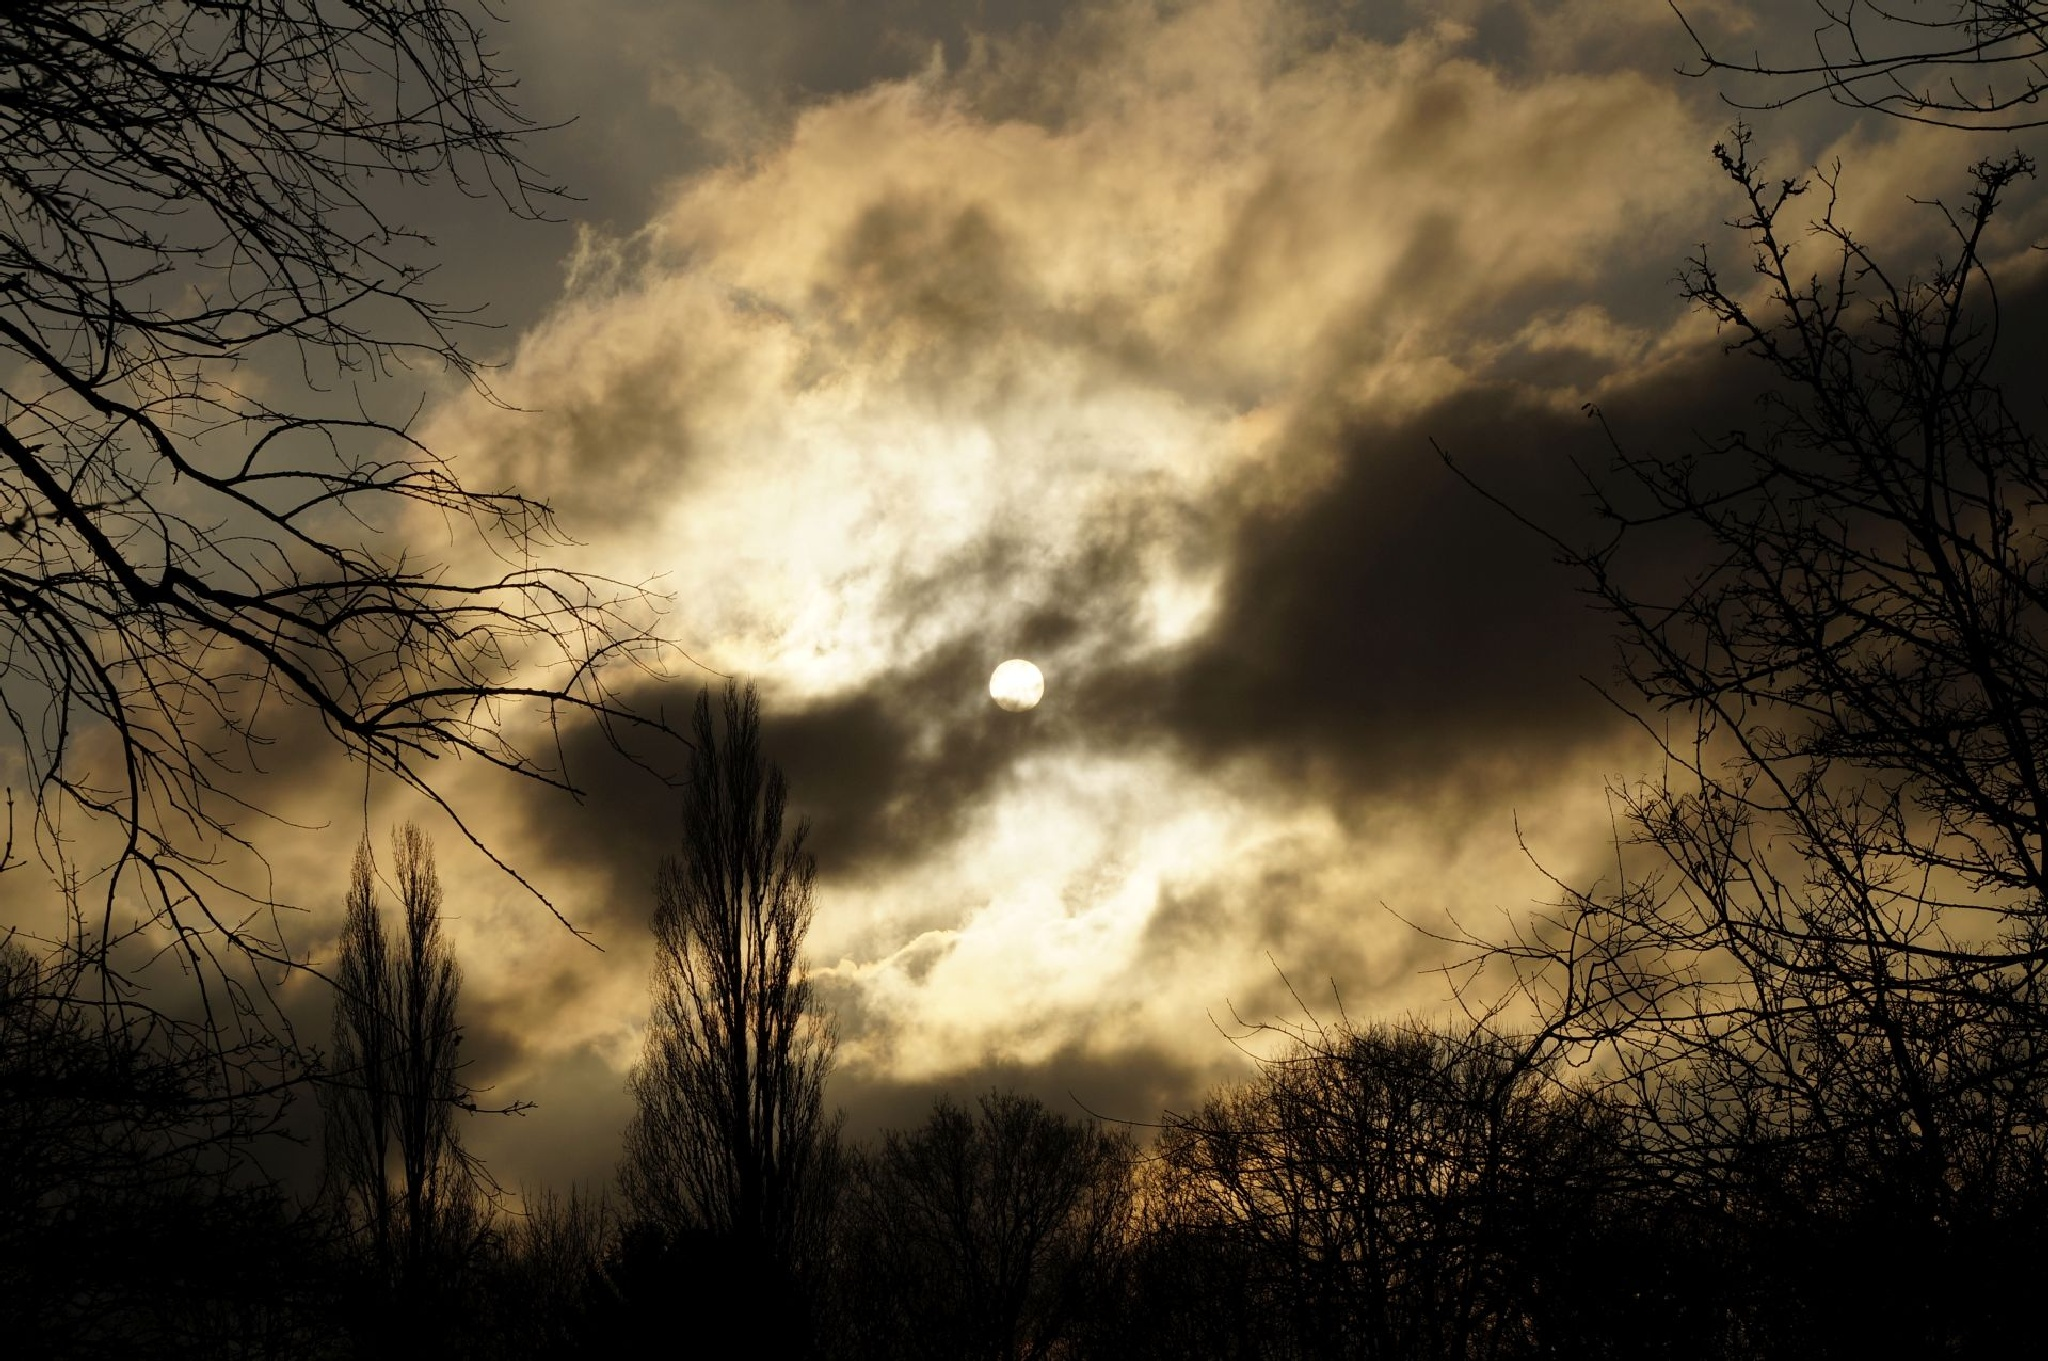 sun in the clouds by Frank Schmidt